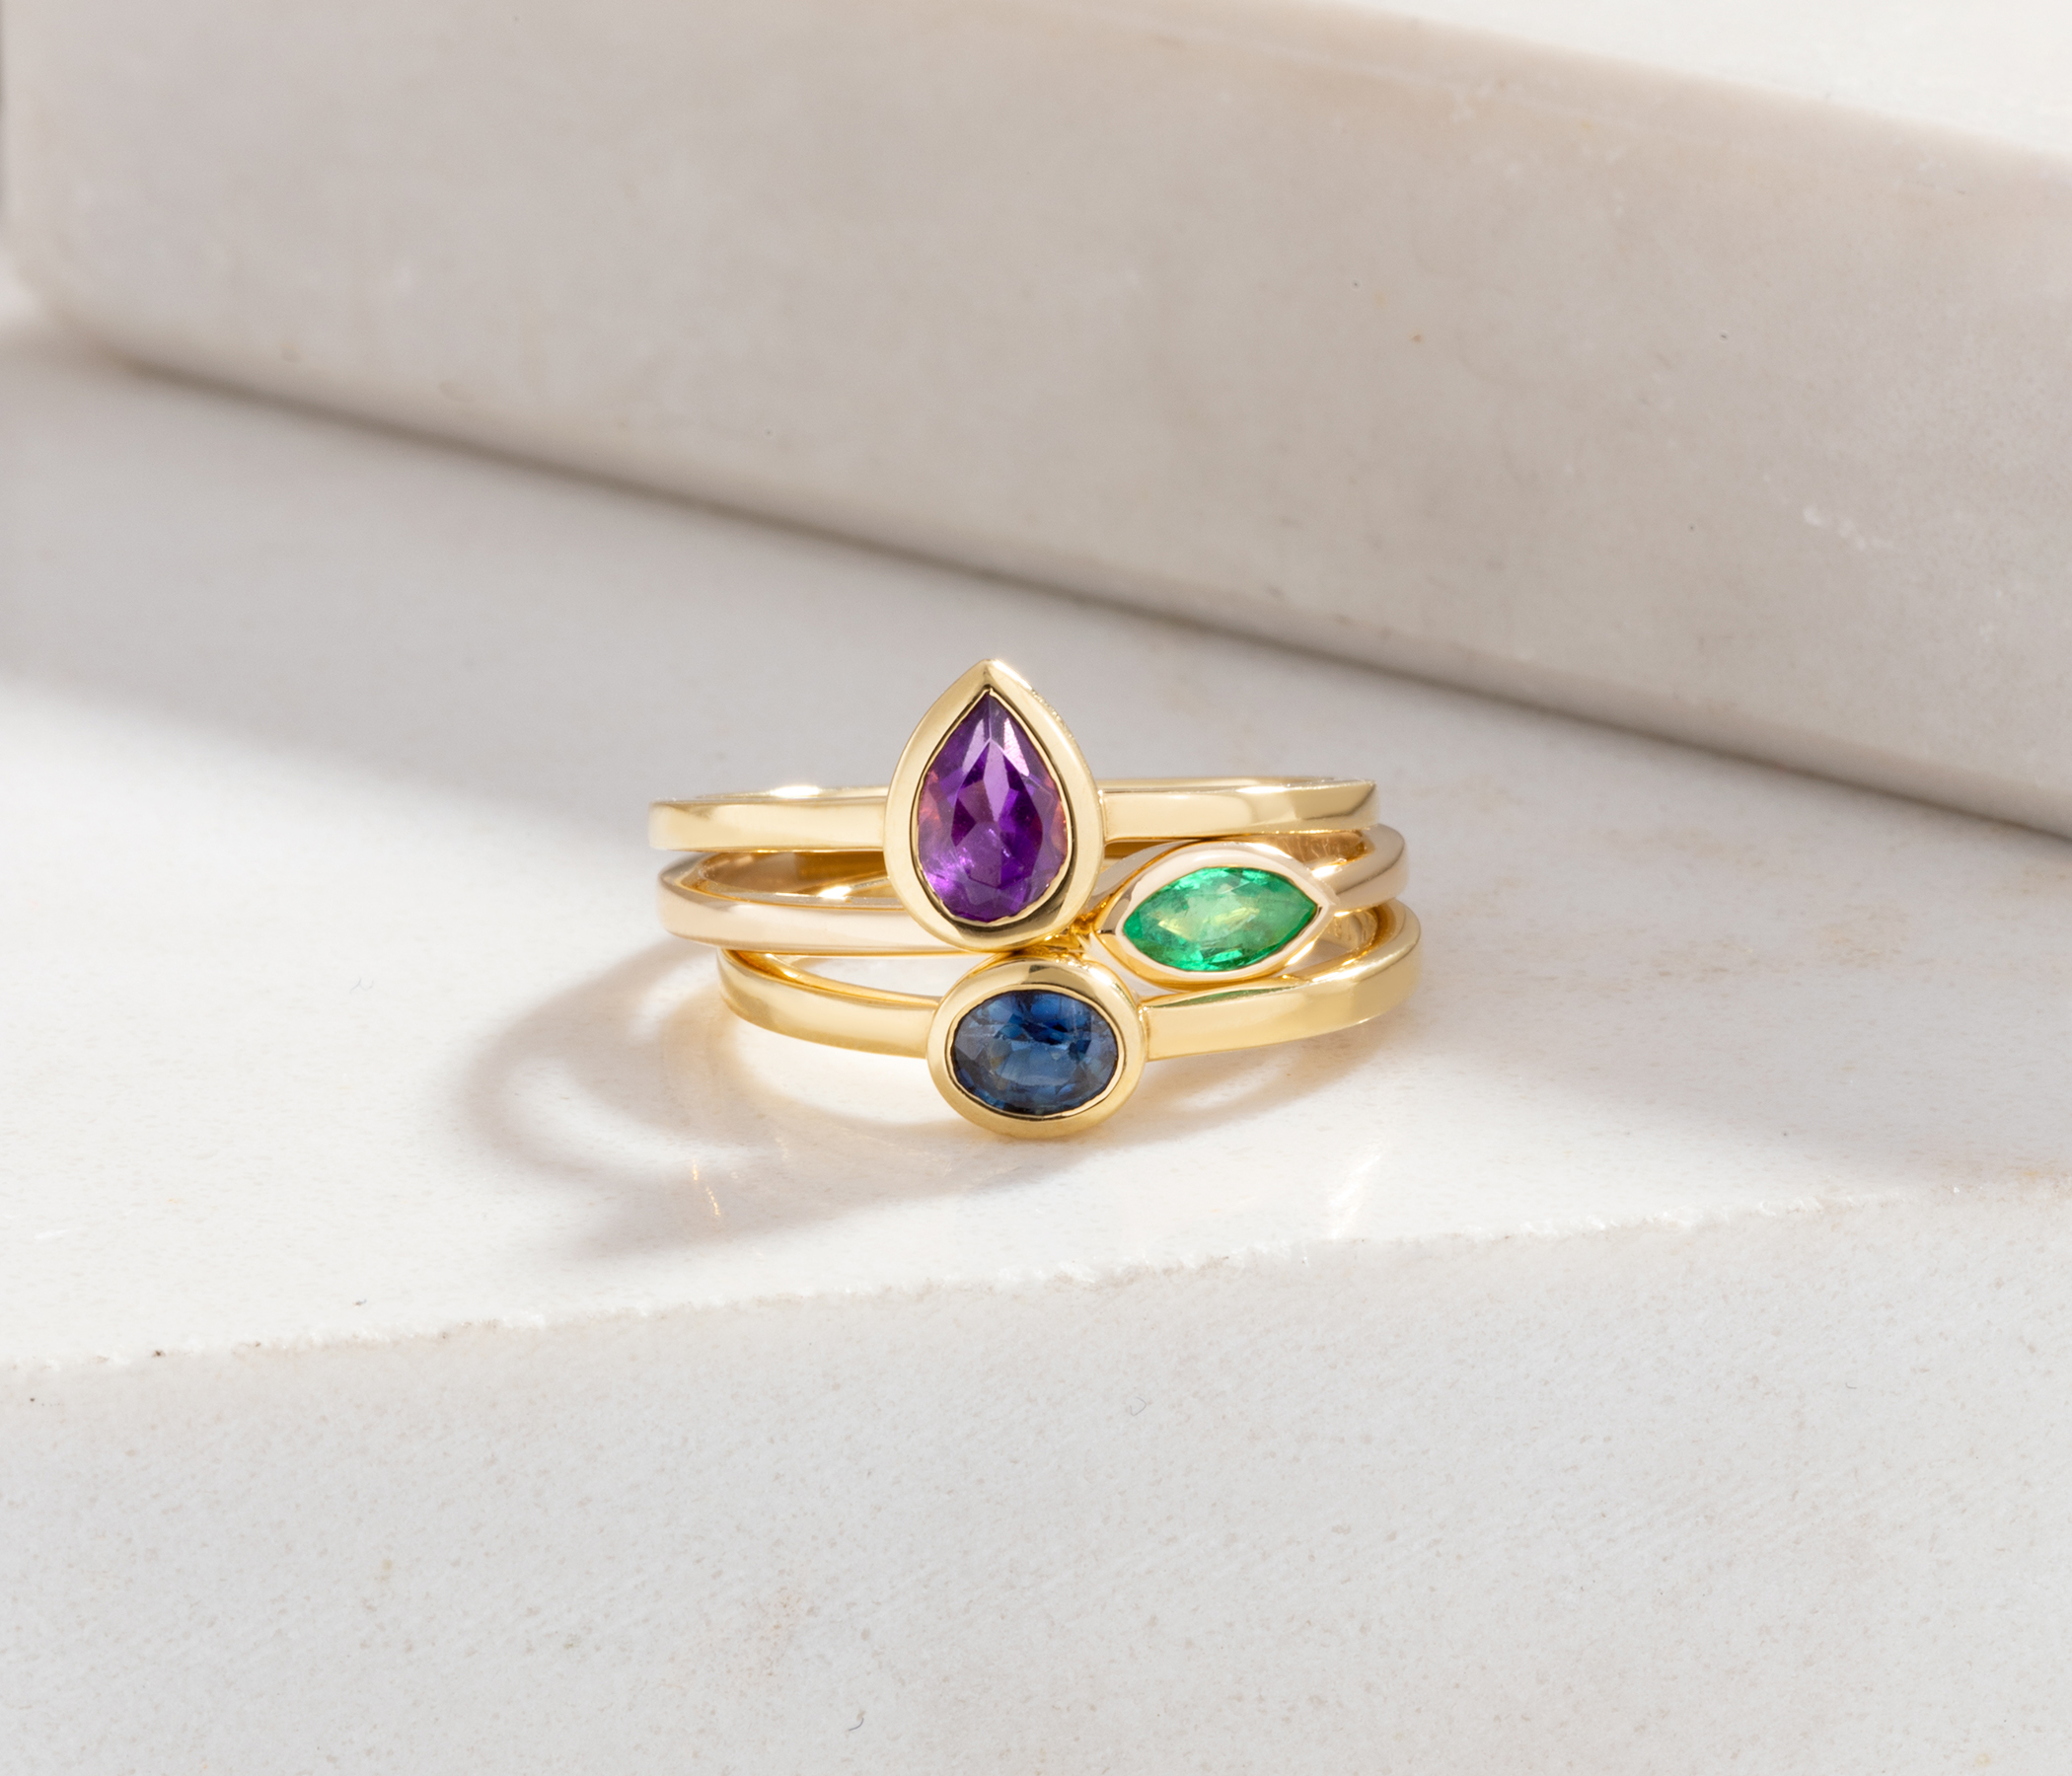 Our Top 10 Fine Jewelry Gifts Under $1000